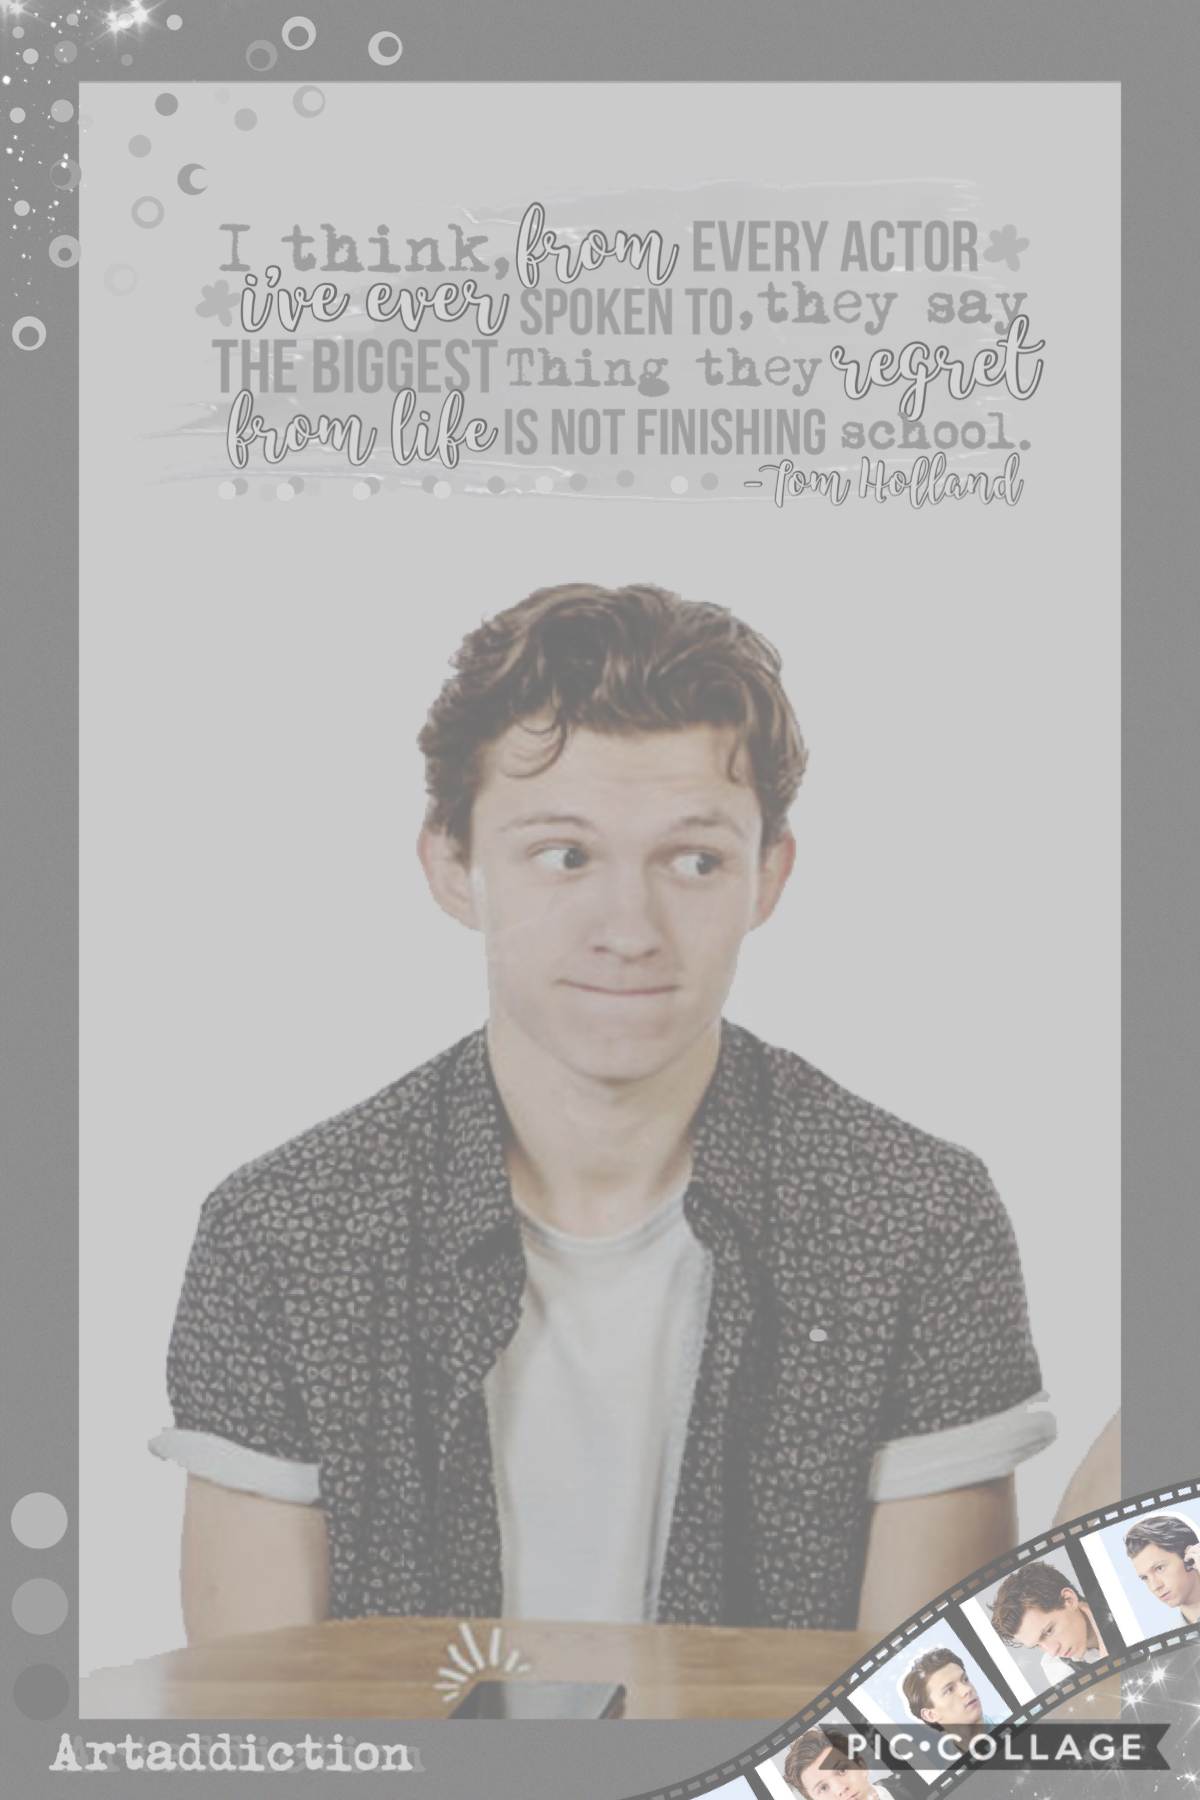 So here's the recommended celeb with most votes , Tom Holland, I know it's a bit simple but hope u like it 😅🤗 next up is soffie